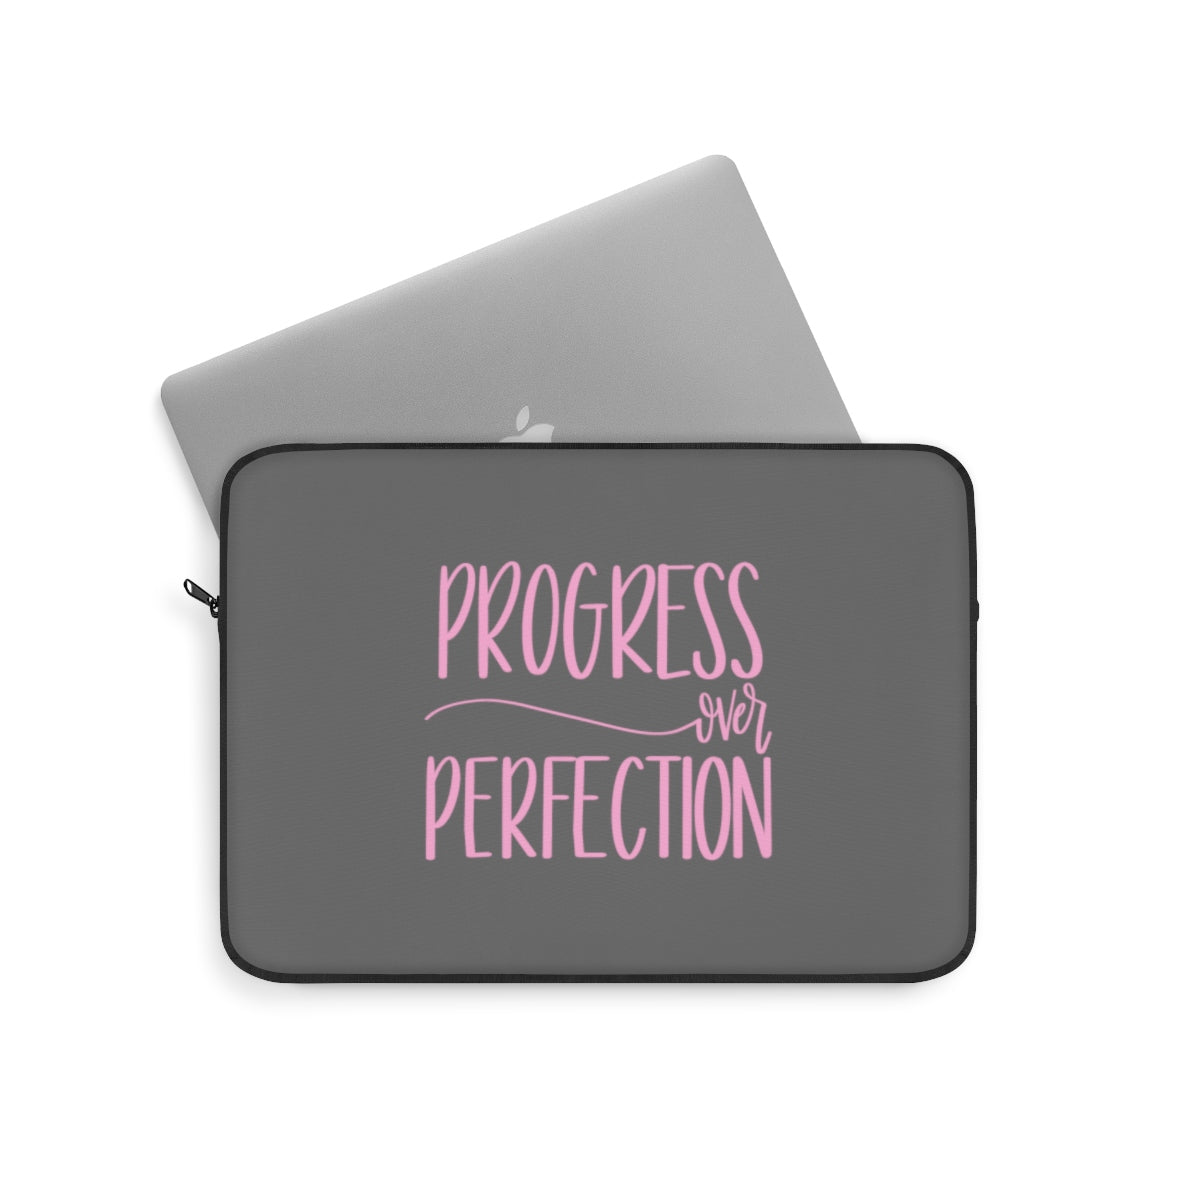 Progress over Perfection Laptop Sleeve | Business Accessories at The Nelson Company